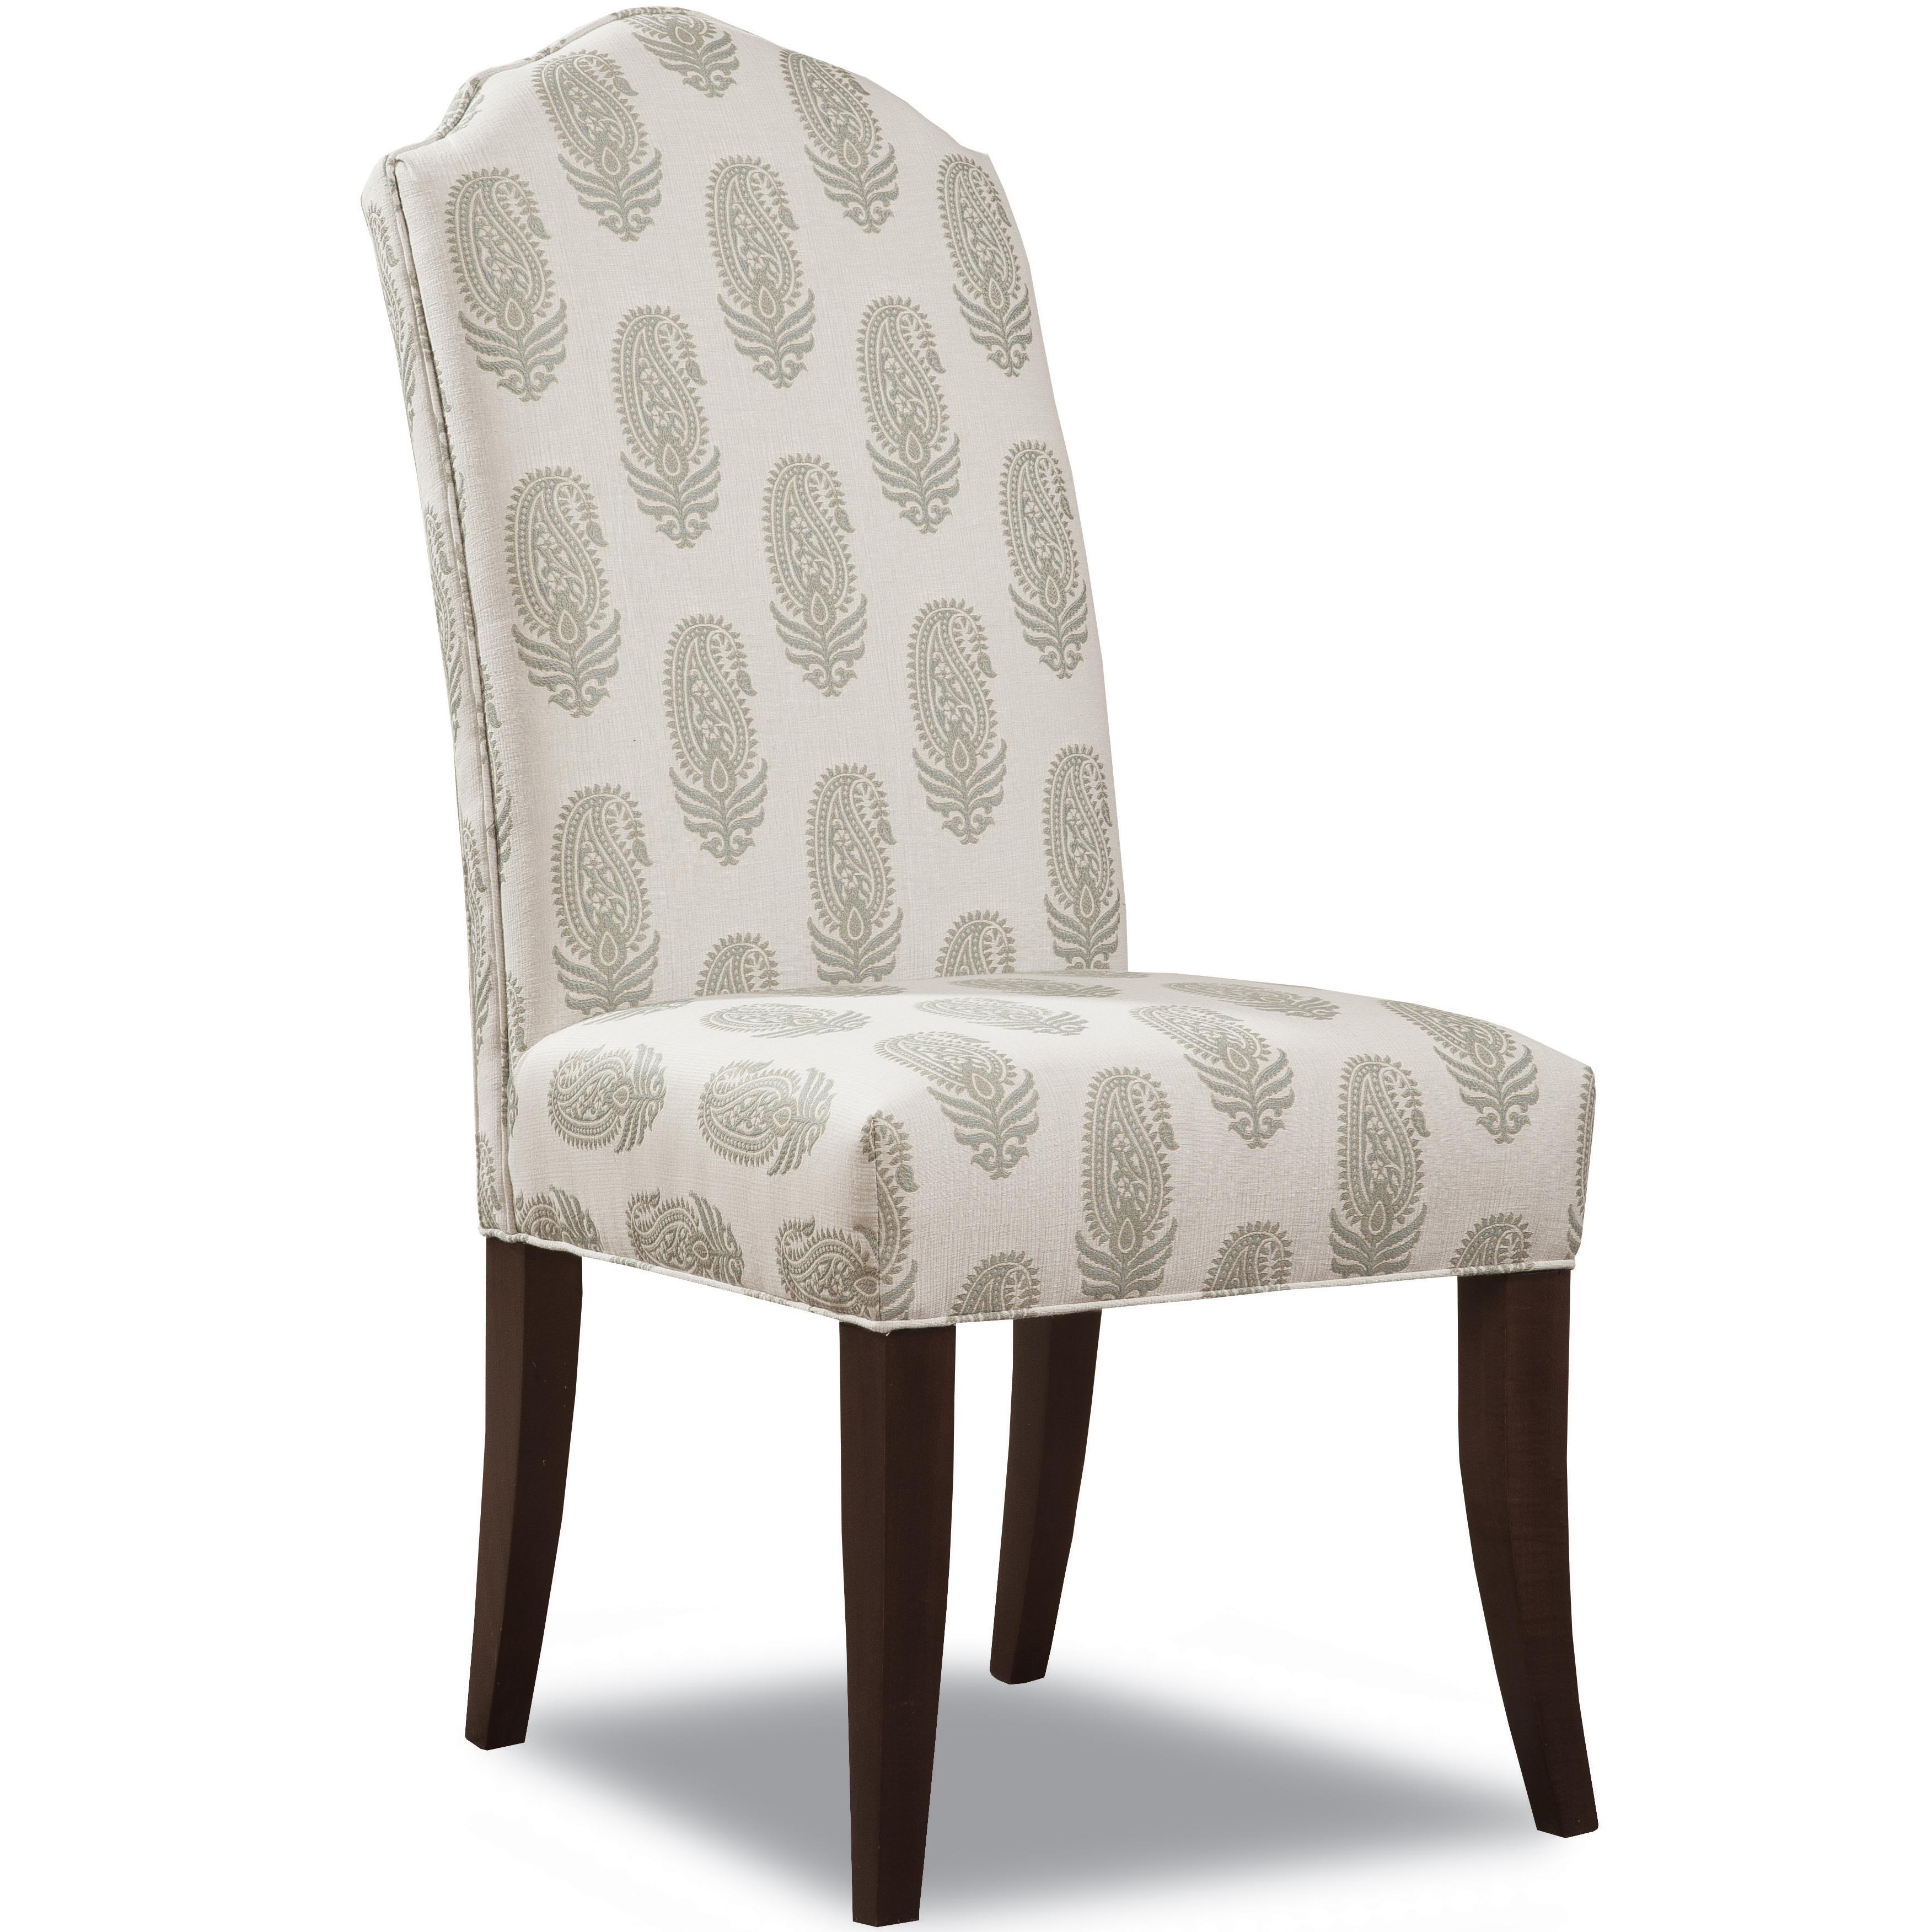 2407 Upholstered Dining Side Chair by Geoffrey Alexander at Sprintz Furniture